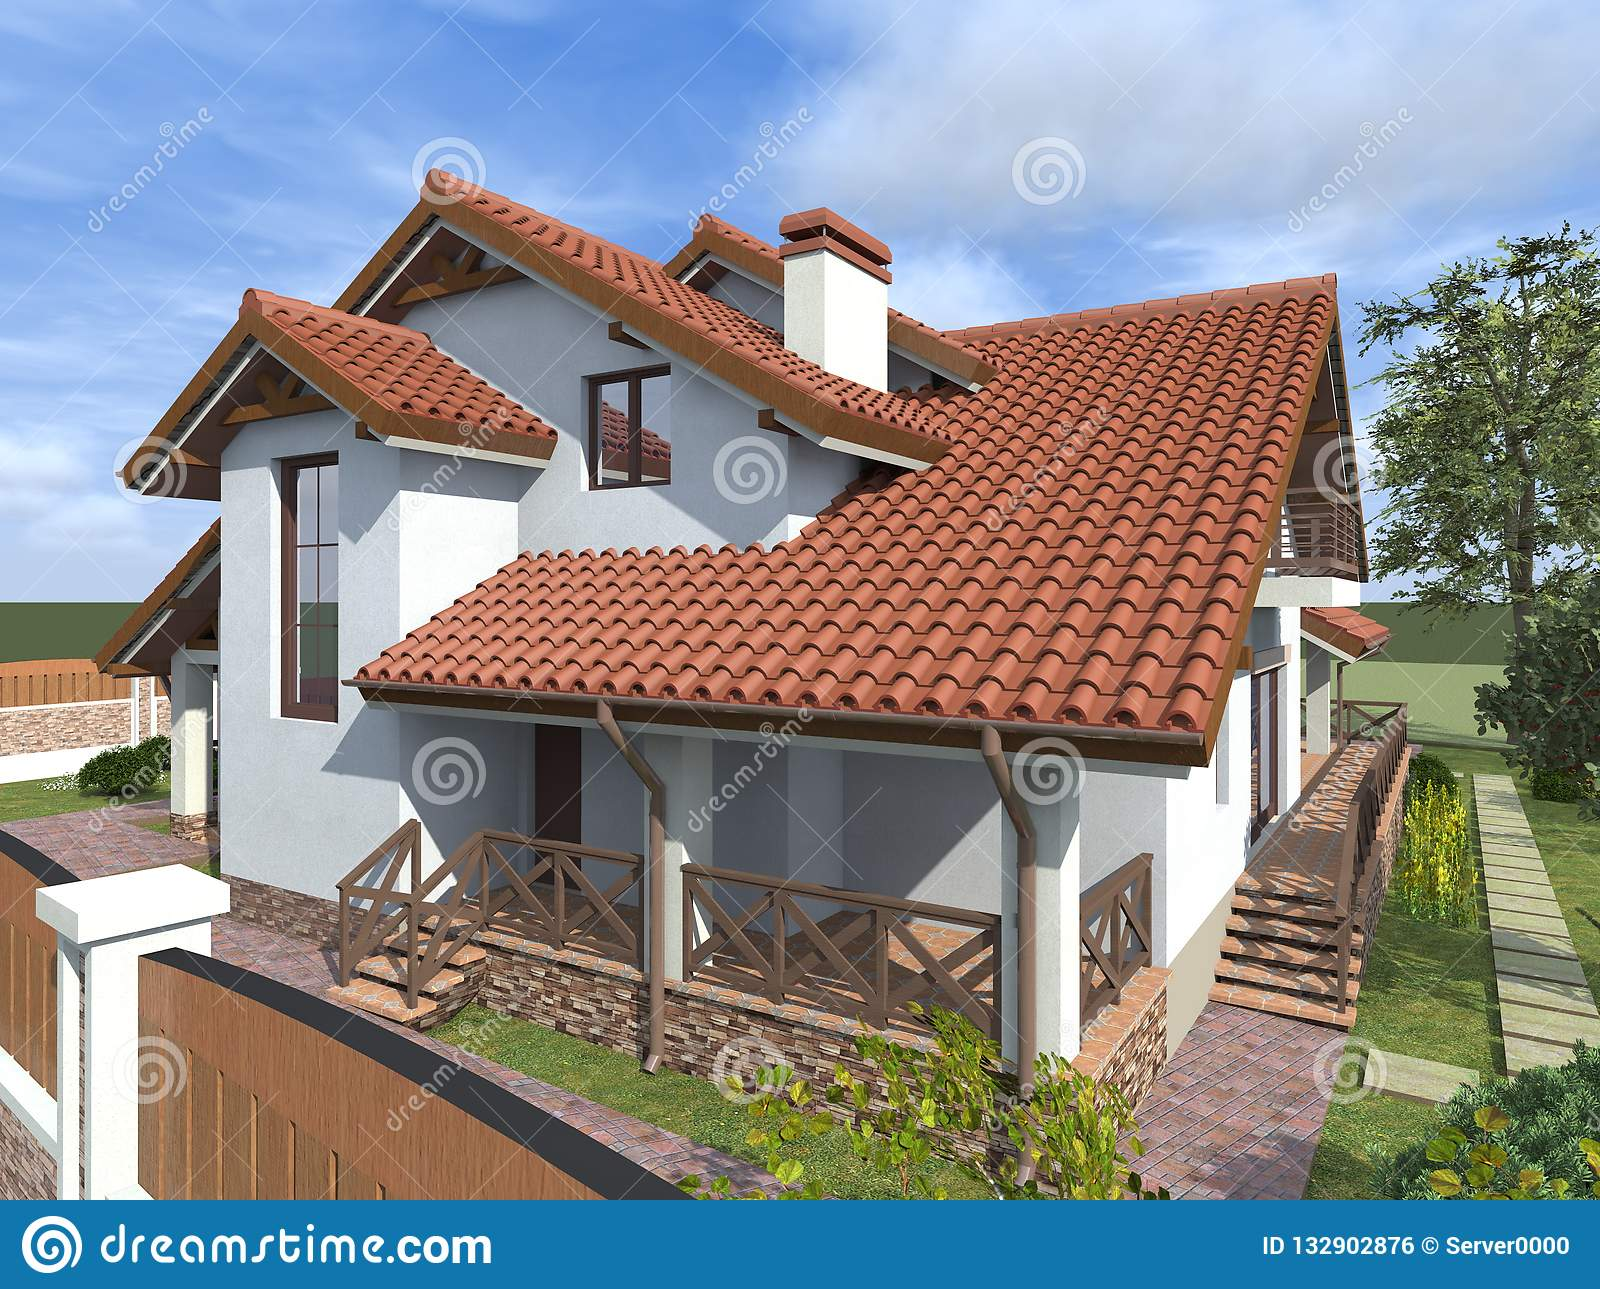 Private House Cottage Tile Roof Stock Photo Image Of Southern Street 132902876